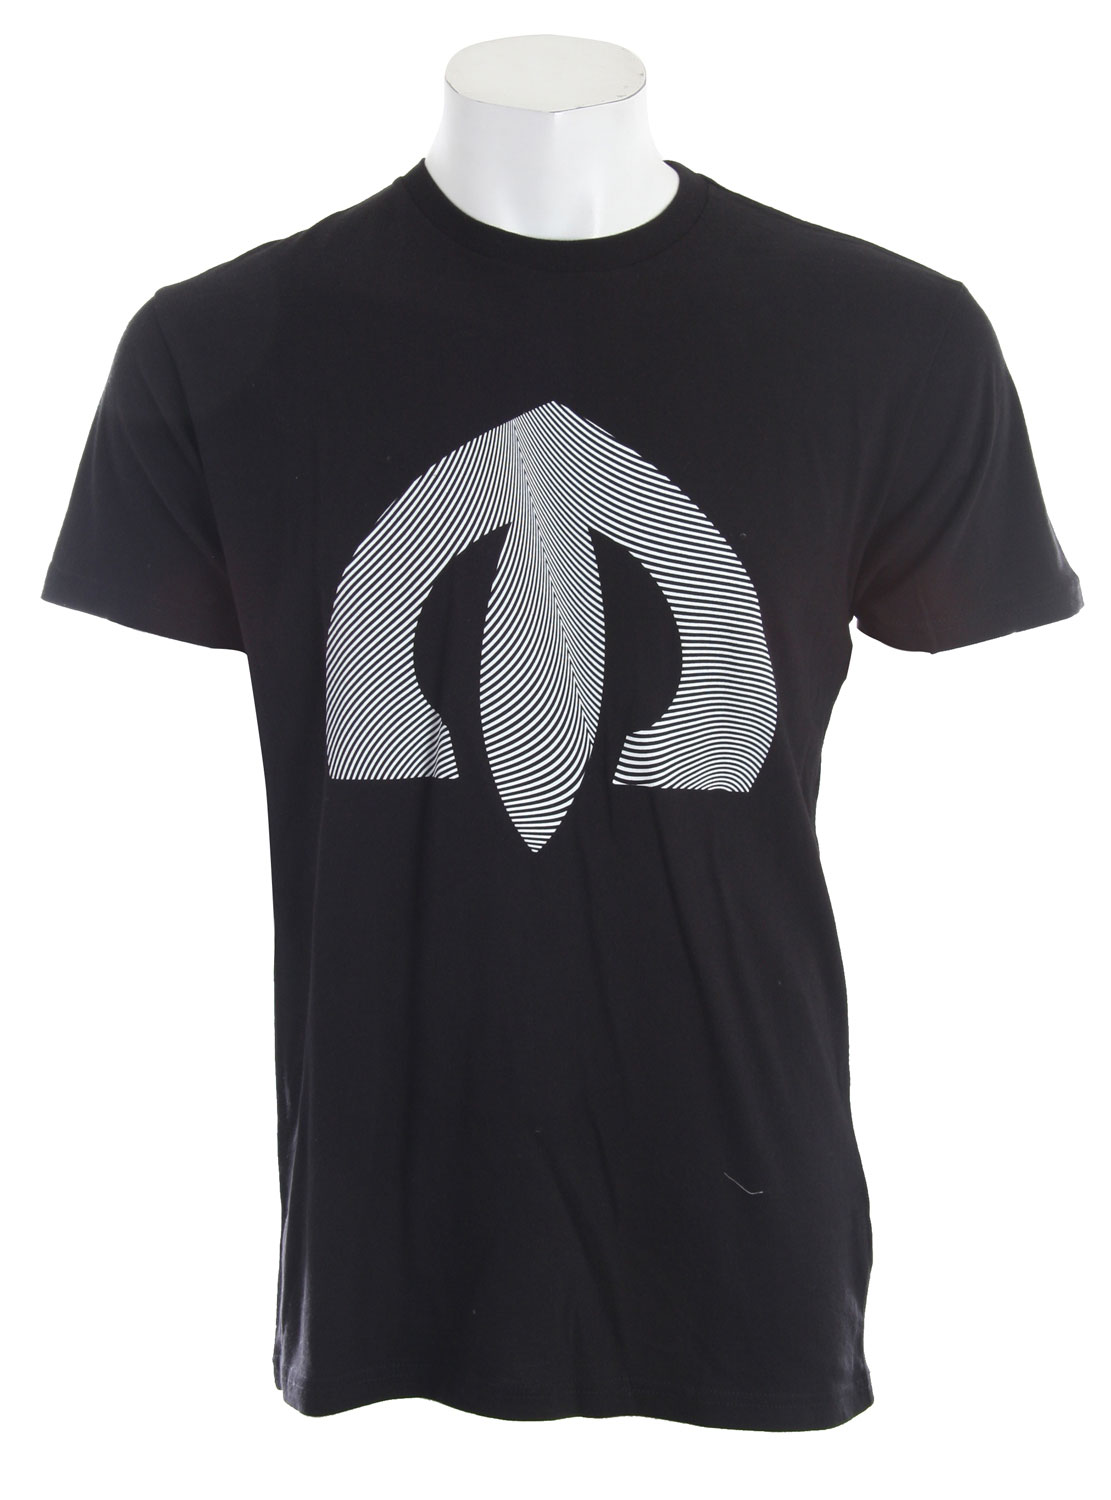 Key Features of The Oakley Lord Helmet T-Shirt: Regular Fit Crew Neck Short Sleeve - $13.95